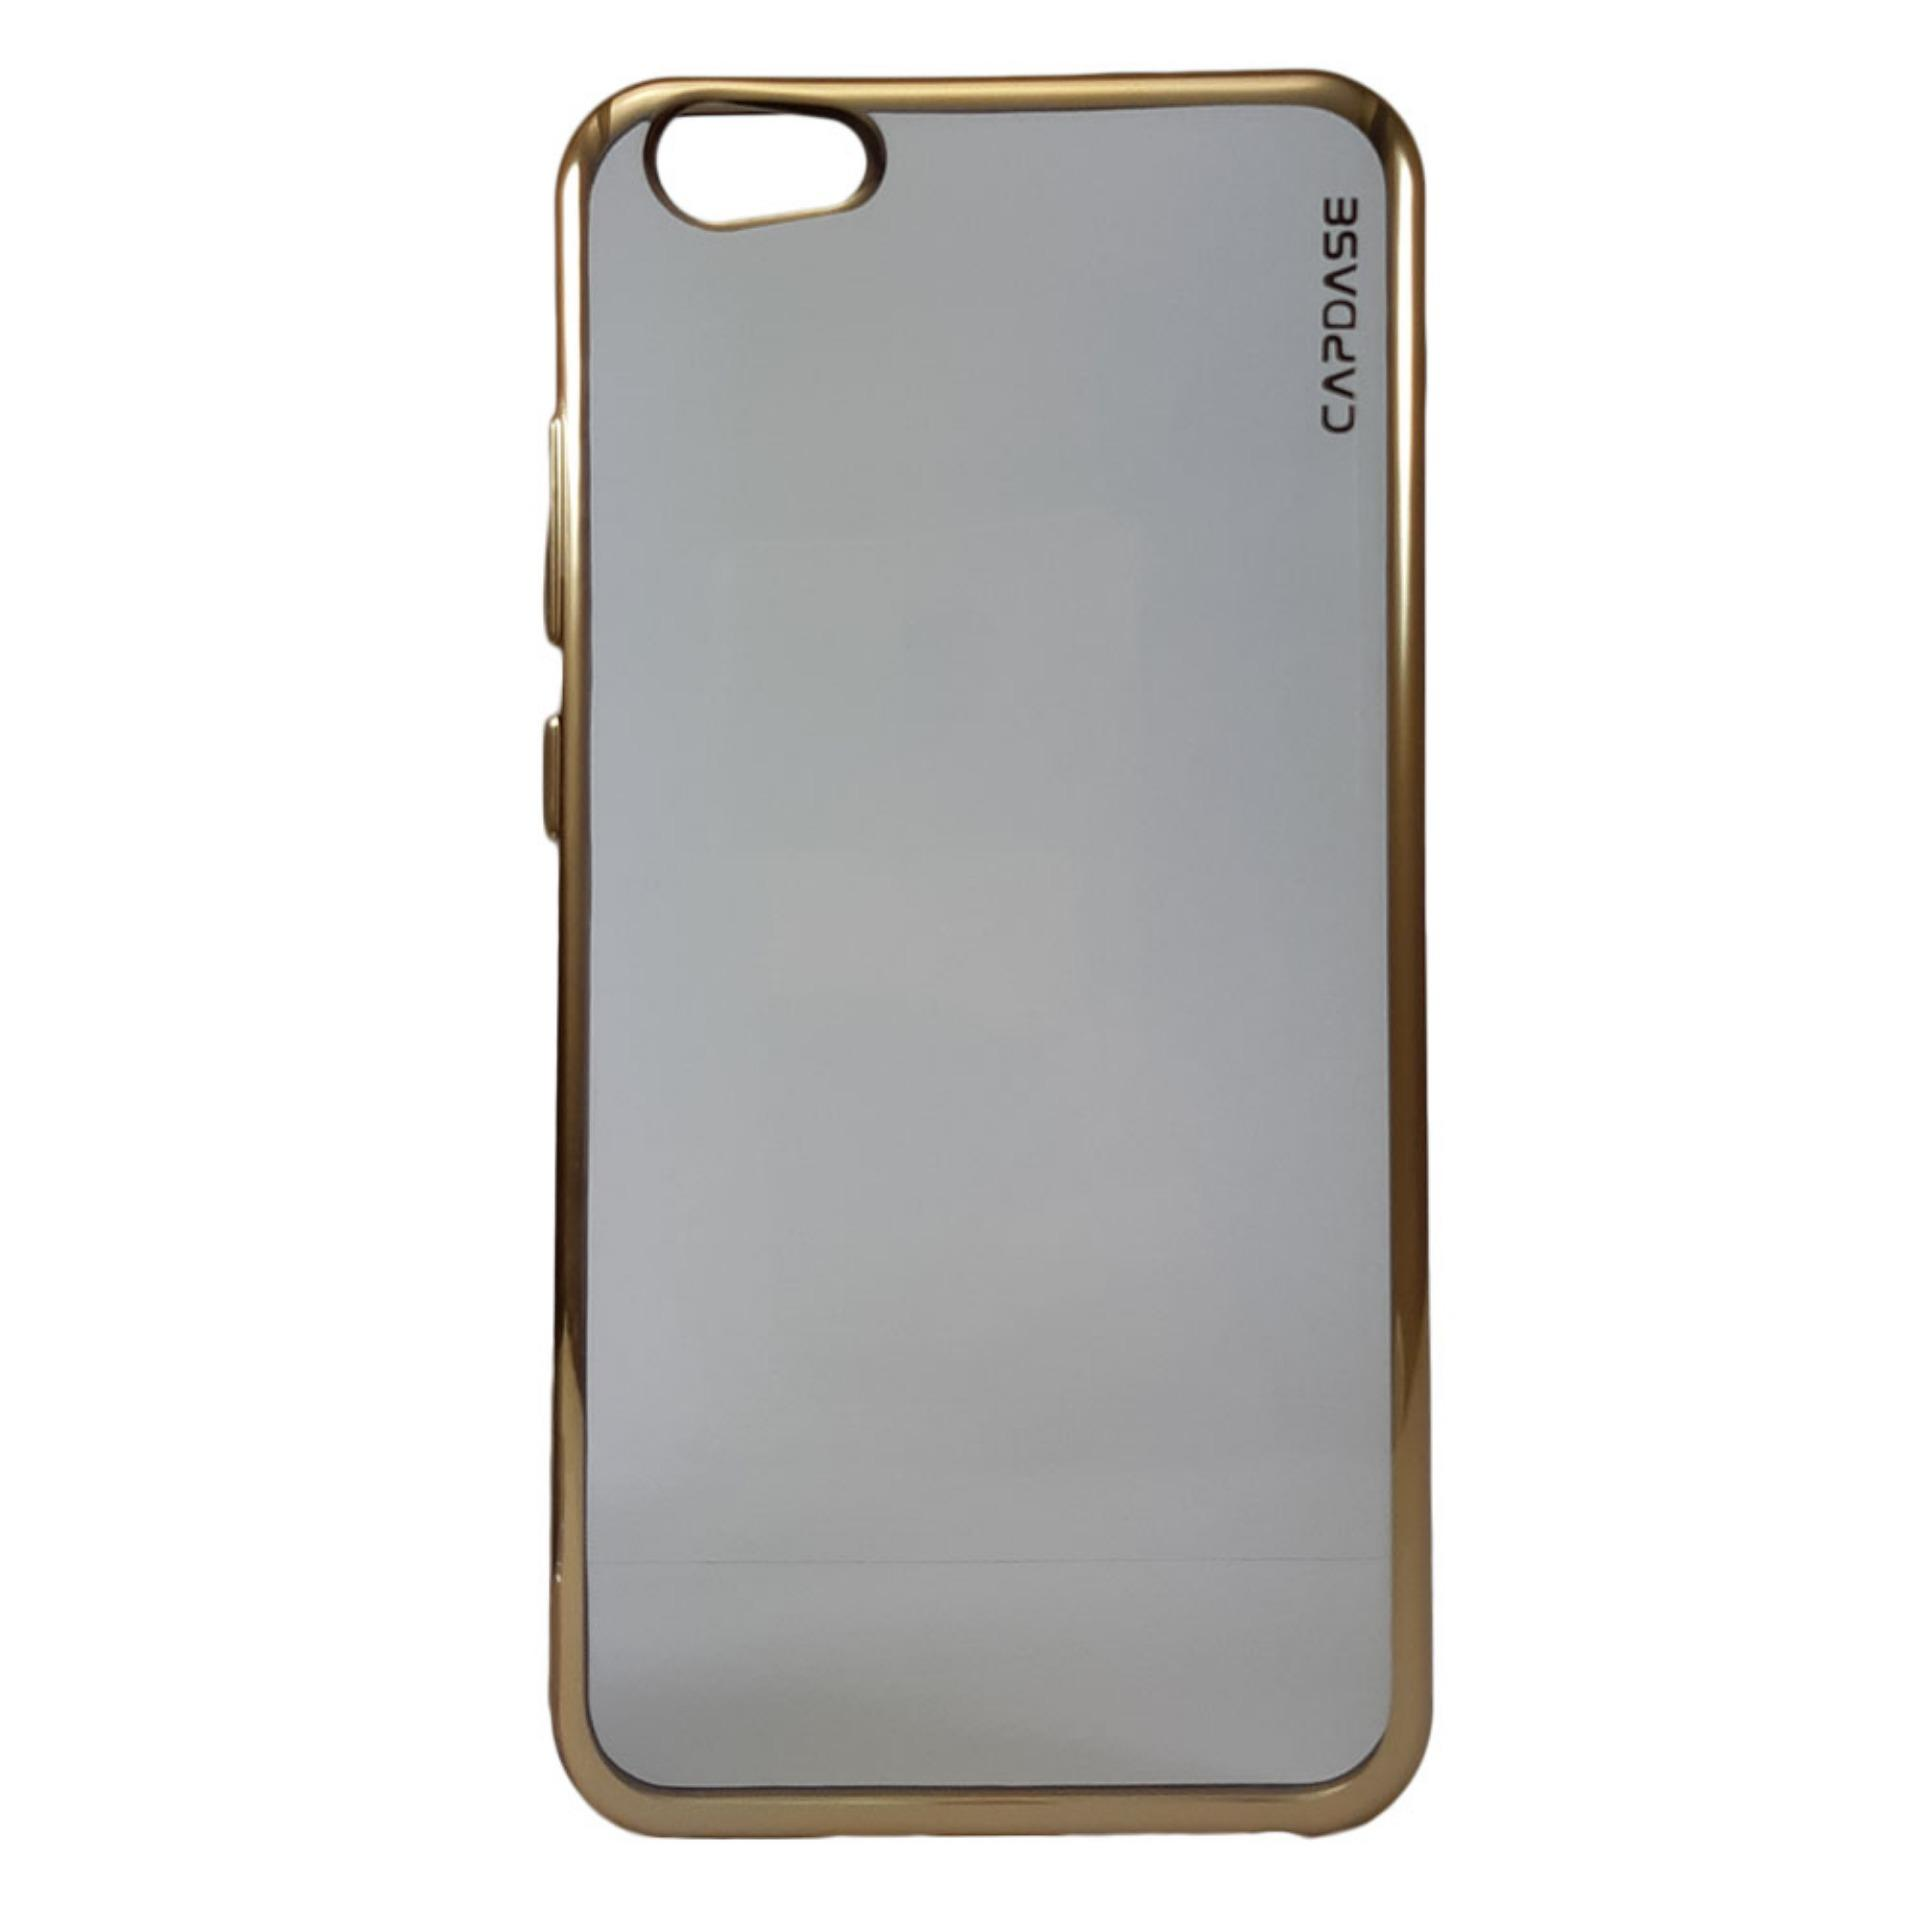 Capdase Posh Slim Fit Soft Case Samsung Galaxy S7 Edge Gold Gratis ... 42af7d791f